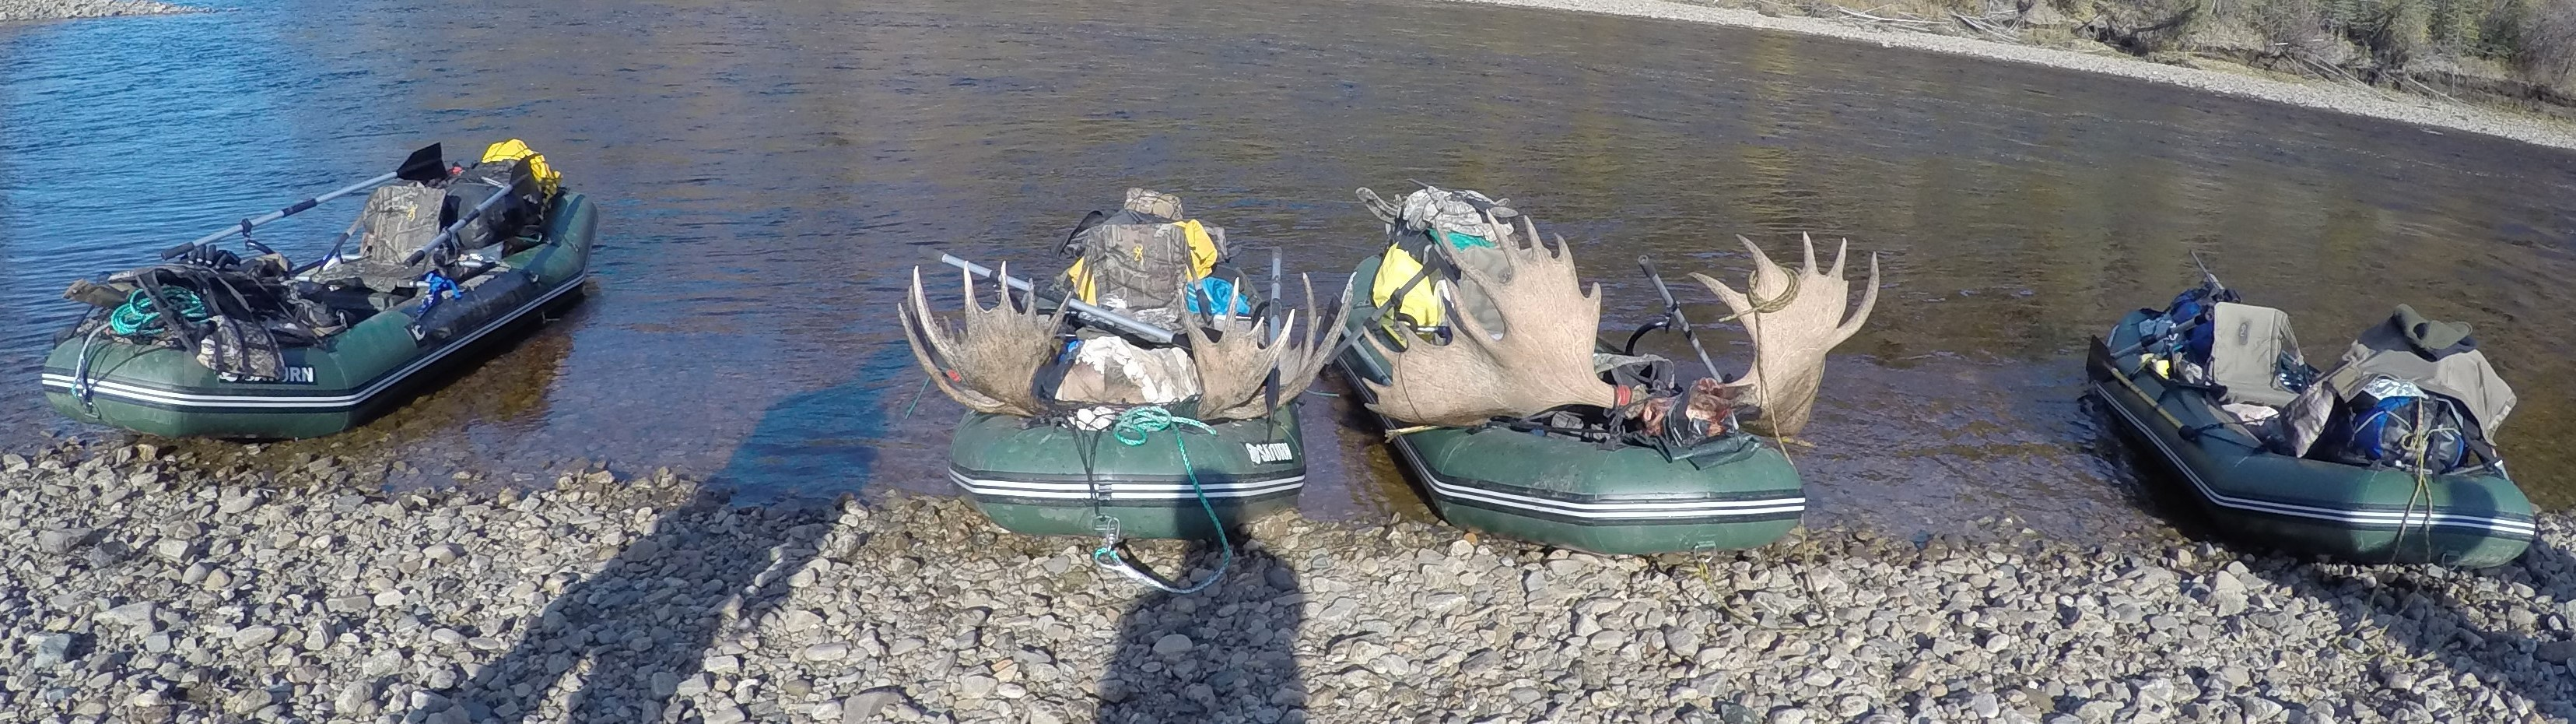 12' Saturn Raft/Kayaks Supporting a successful Alaska Moose Hunt! No better test for durability and performance.